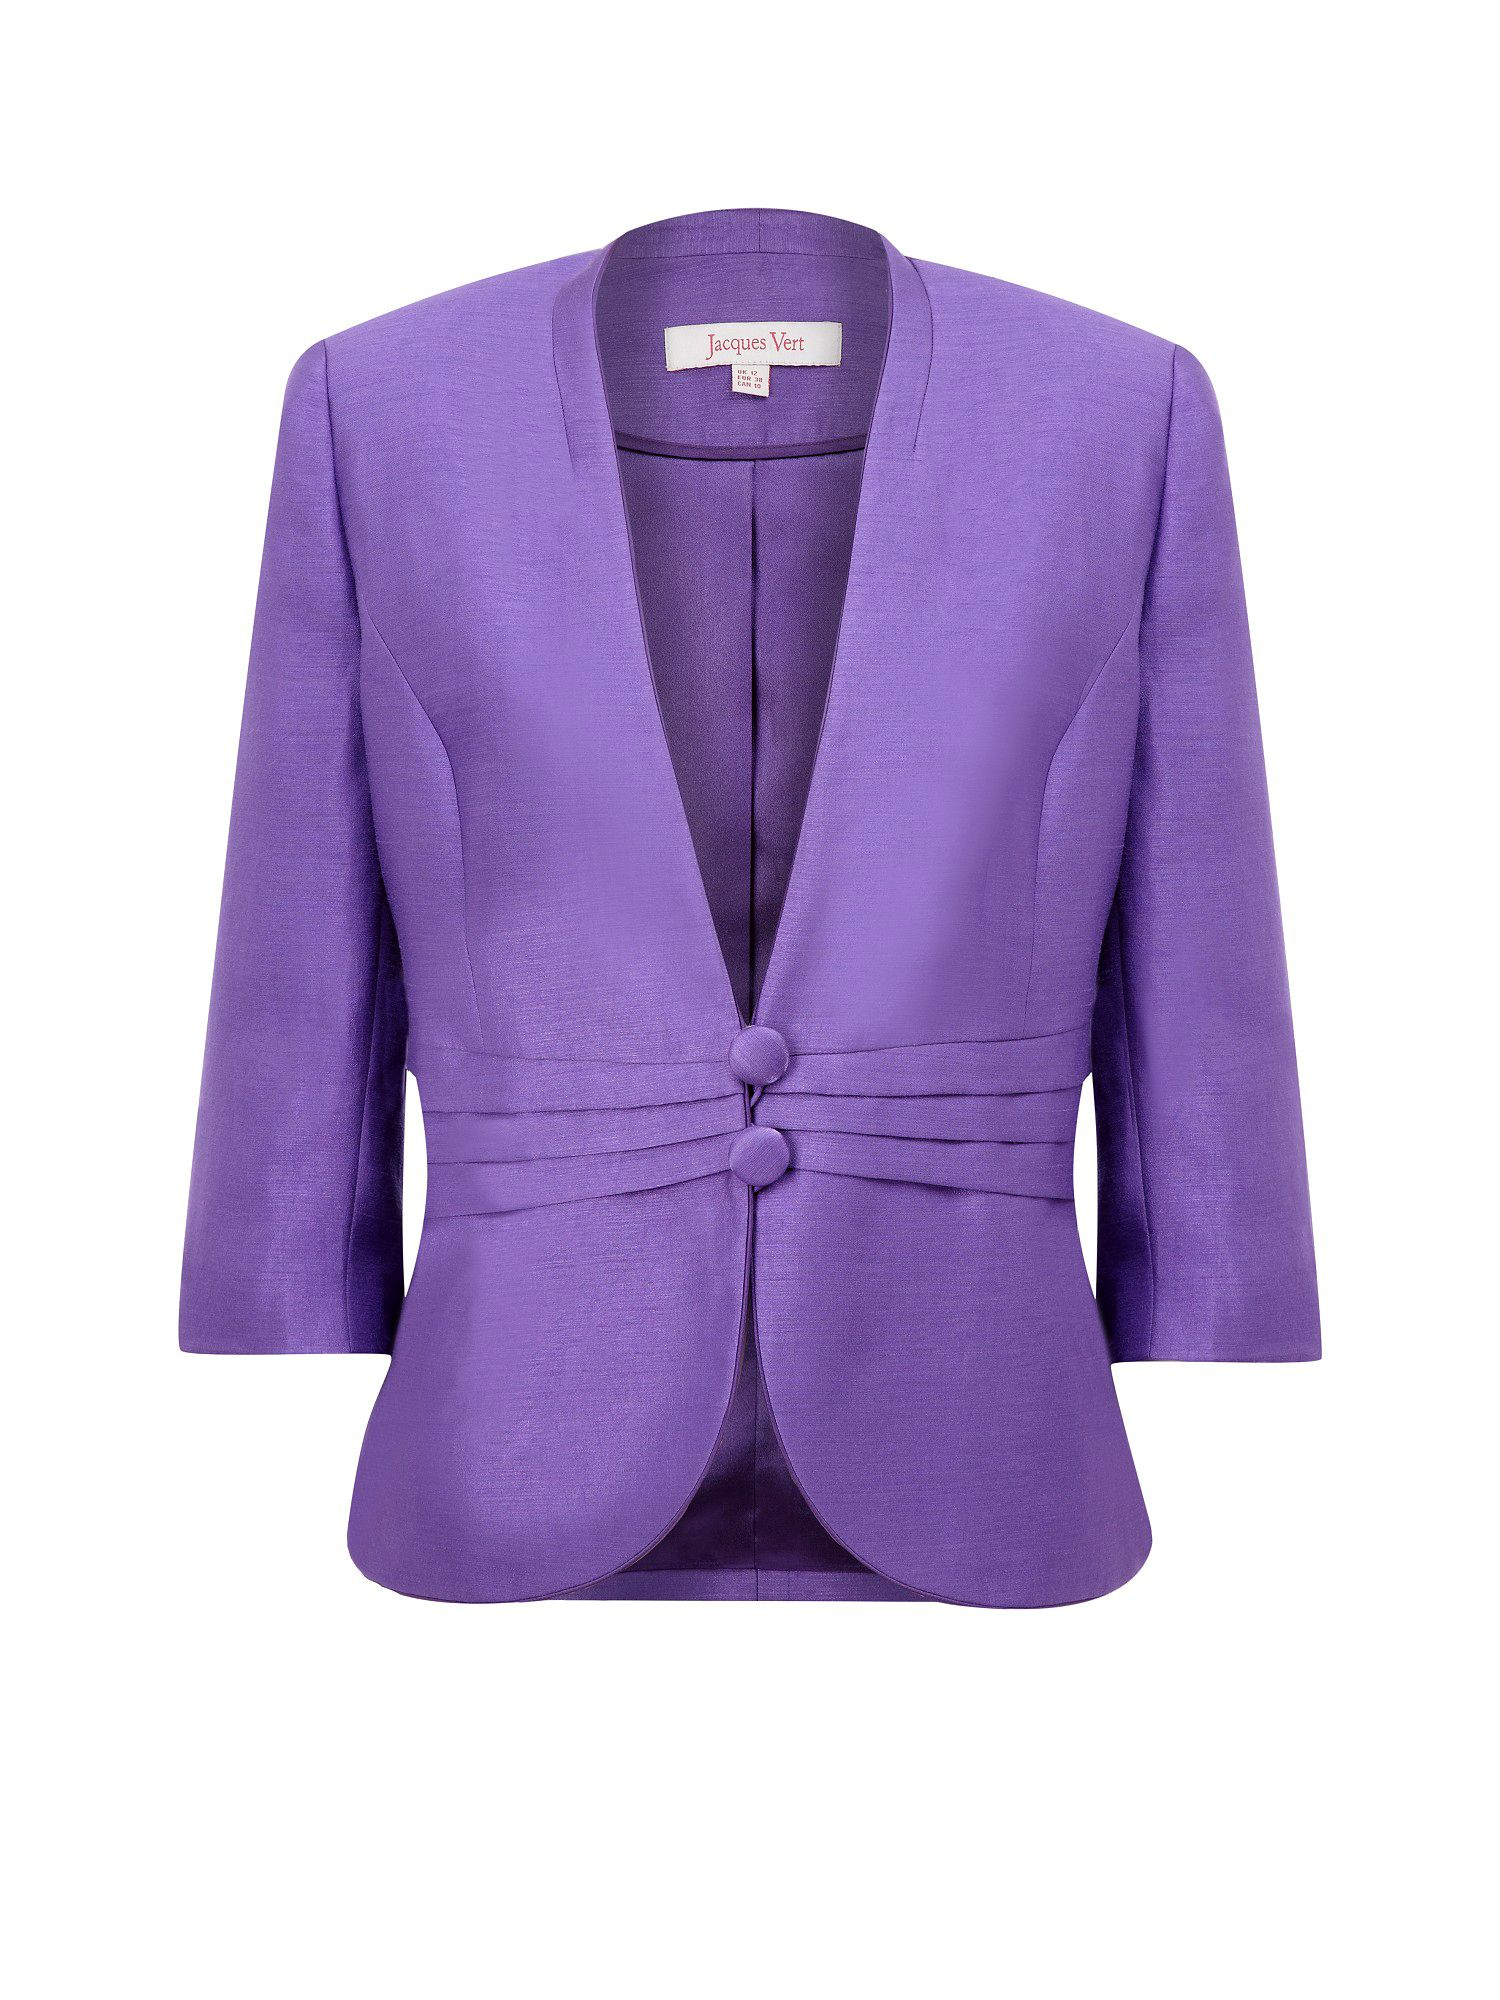 Royal purple jacket